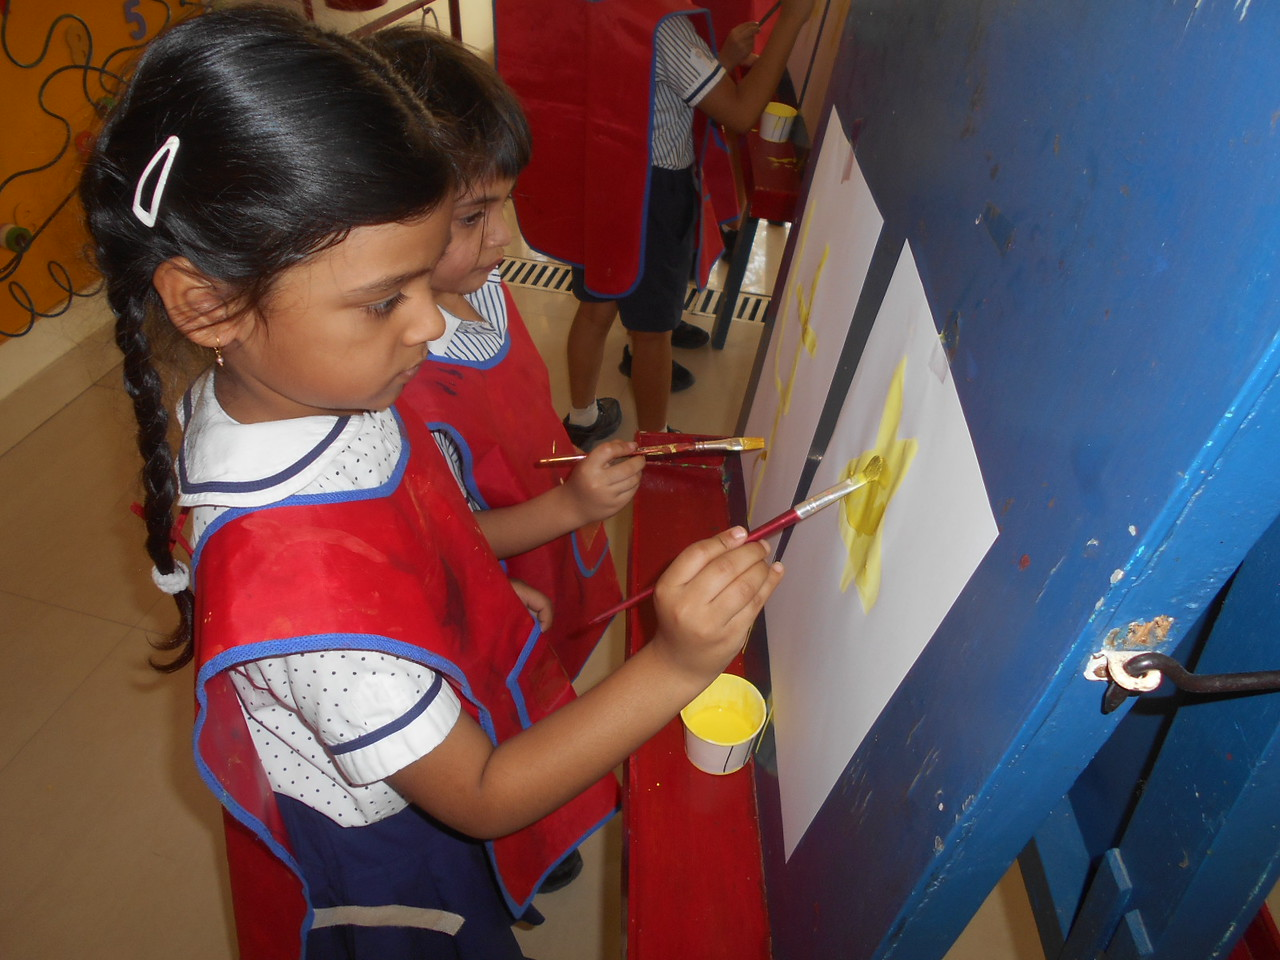 FREE HAND PAINTING BY CHILDREN